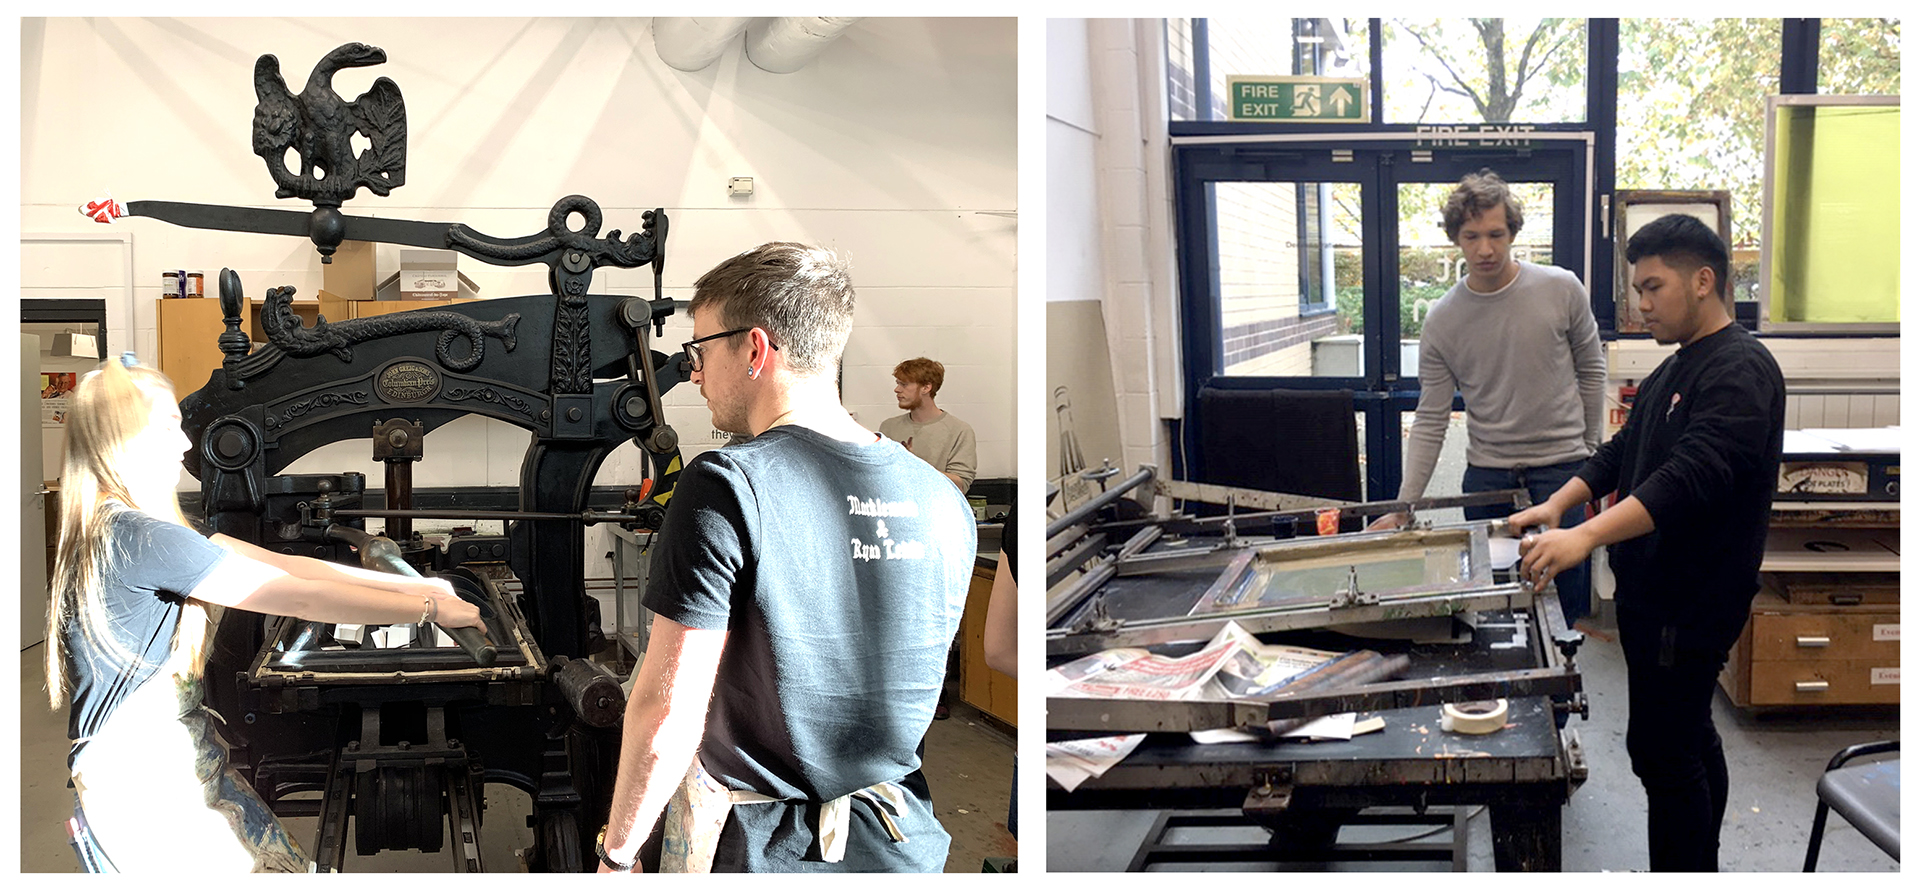 2 photographs of students using print room facilities